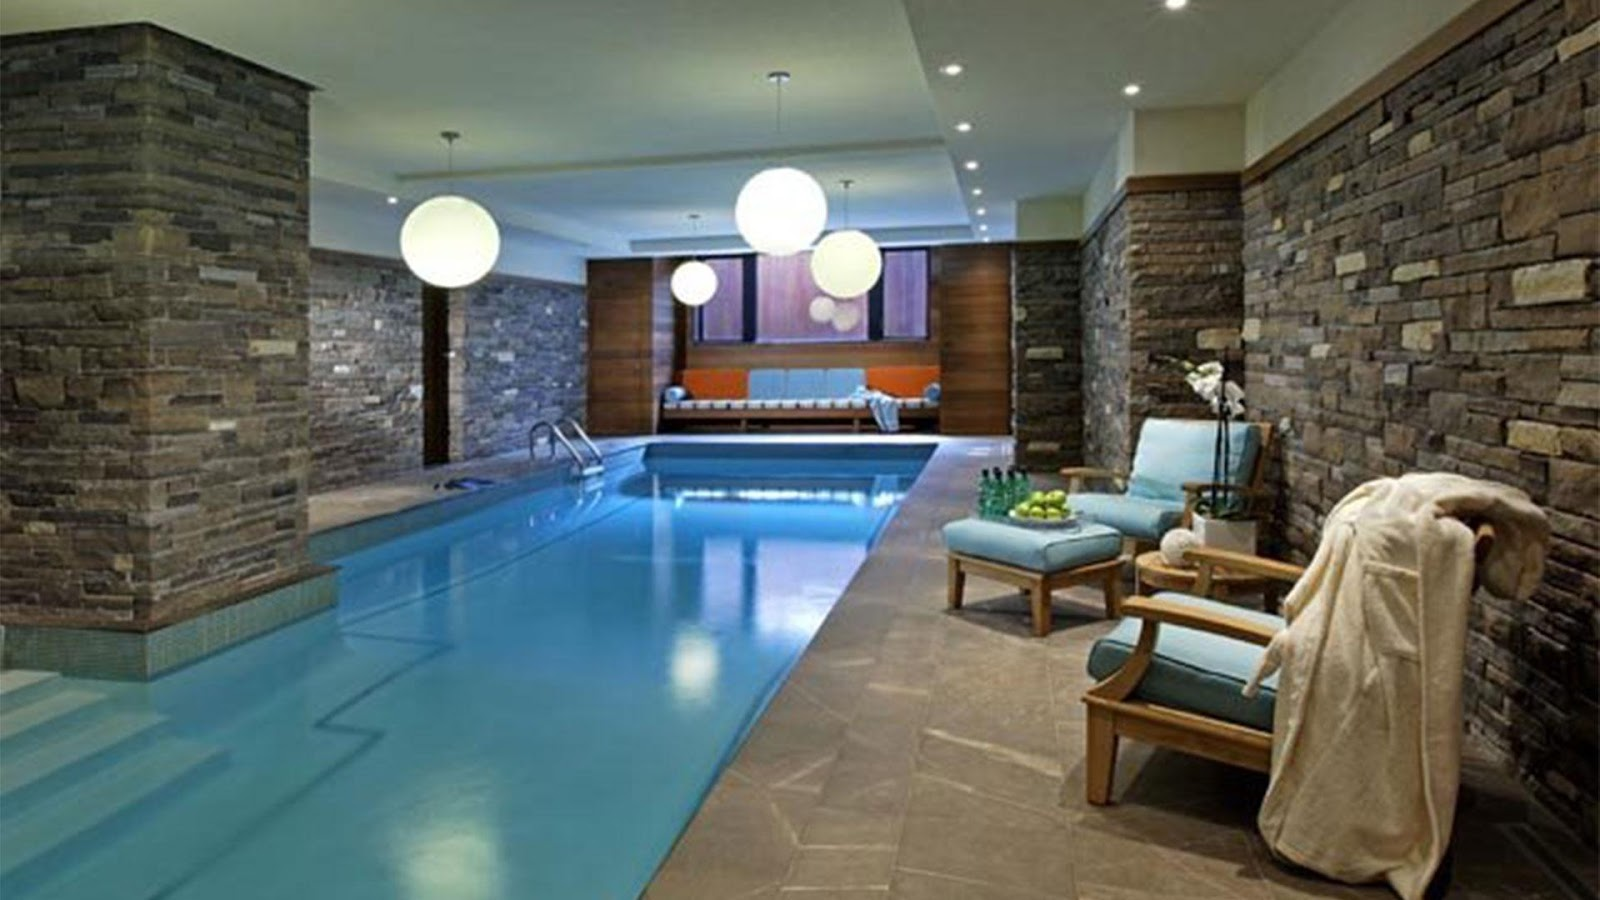 Design with blue tile floor ideas for swimming pool designs for small - How To Design A Pool Pool Design